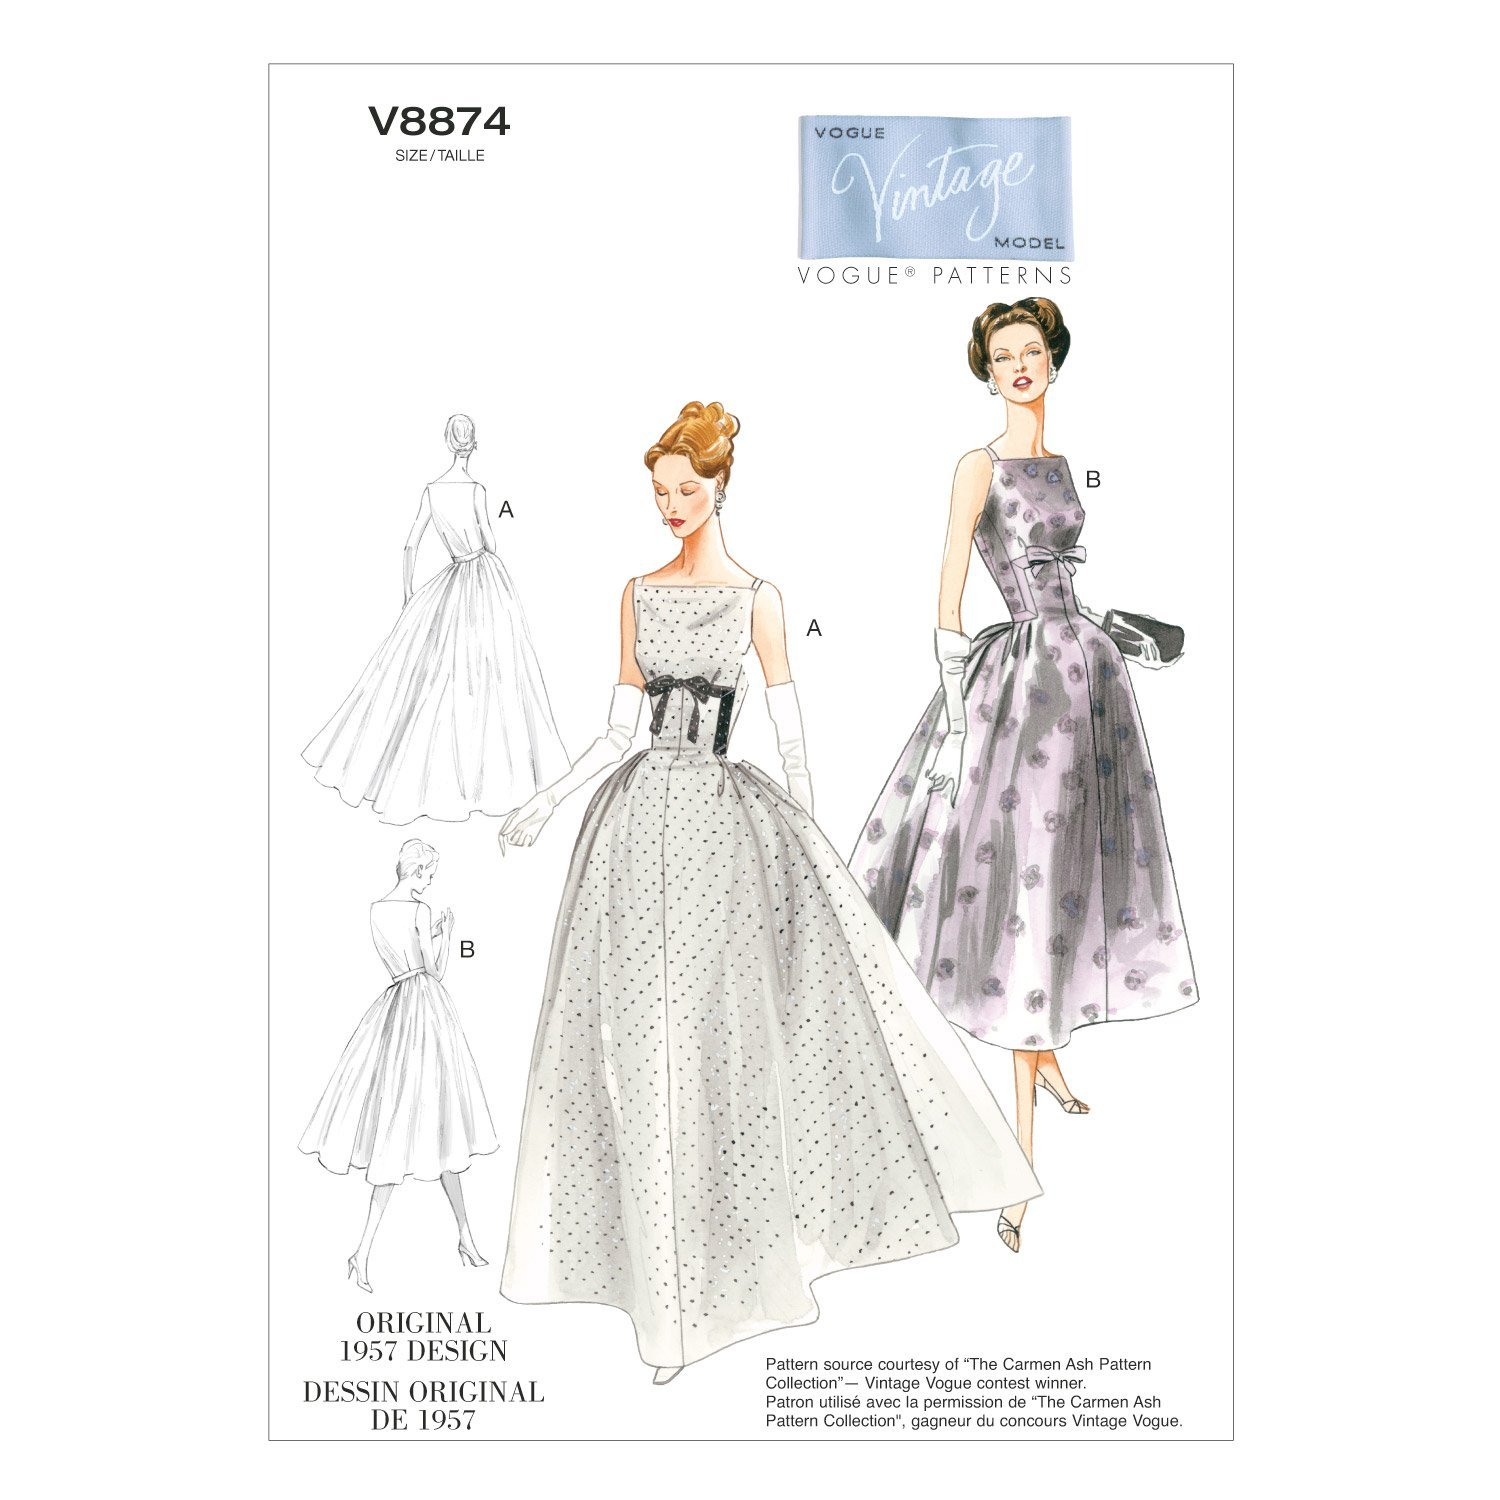 1950s Sewing Patterns | Dresses, Skirts, Tops, Mens 1957 Vogue Patterns V8874 Misses Dress Sewing Template Size A5 (6-8-10-12-14) $19.99 AT vintagedancer.com